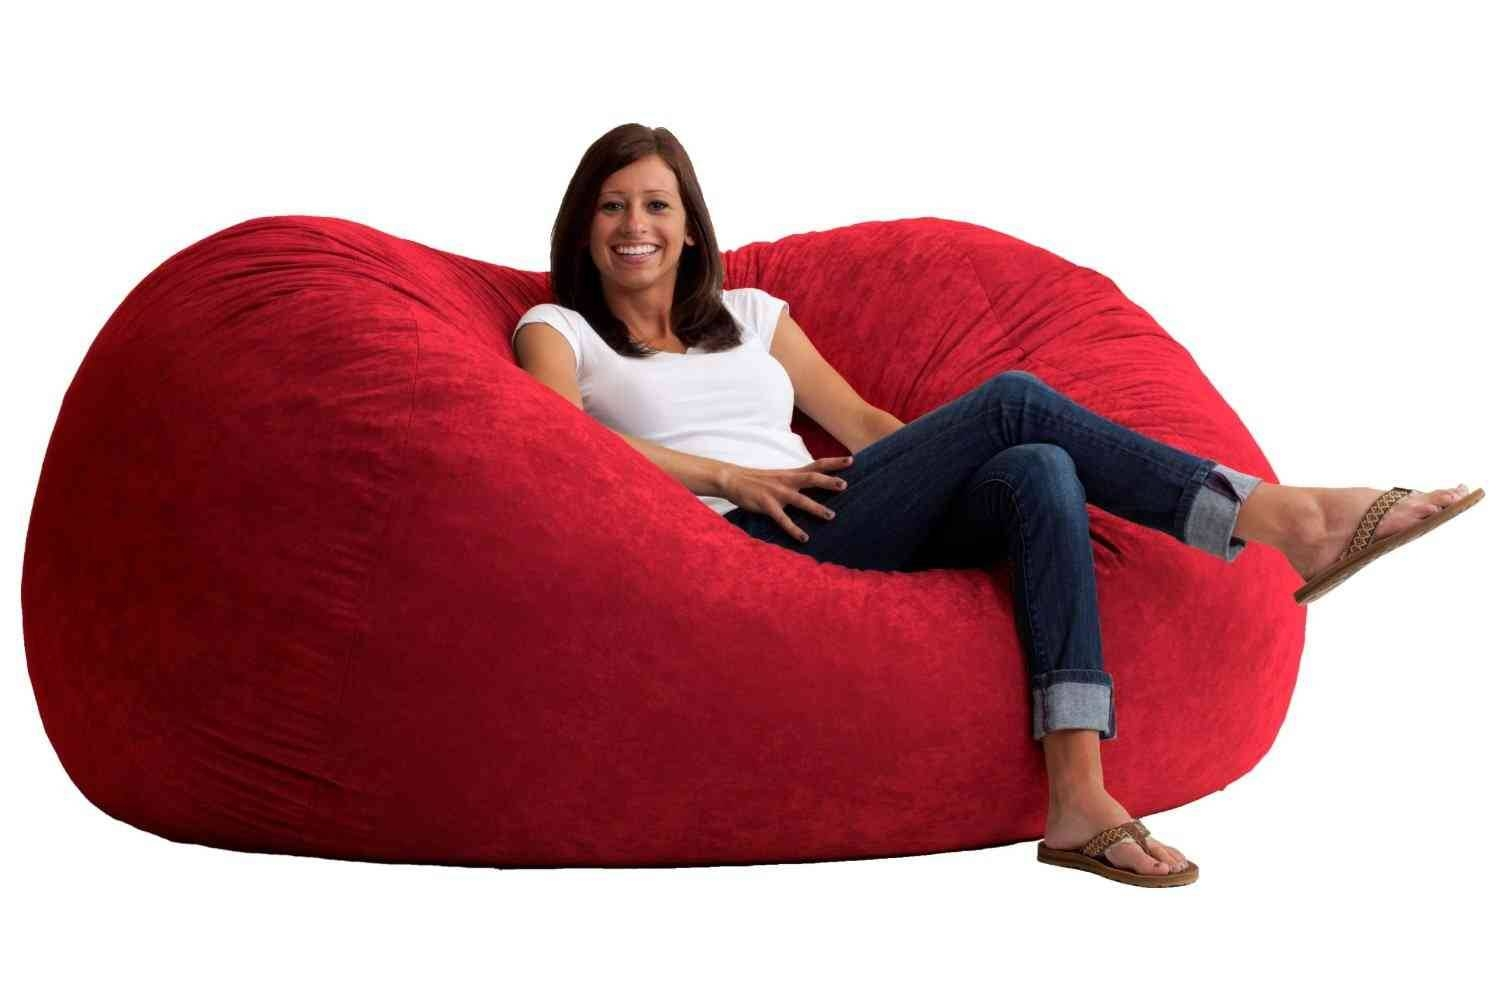 Giant Bean Bag Chair Lounger - Breakyourpiggybank throughout Giant Bean Bag Chairs (Image 12 of 15)